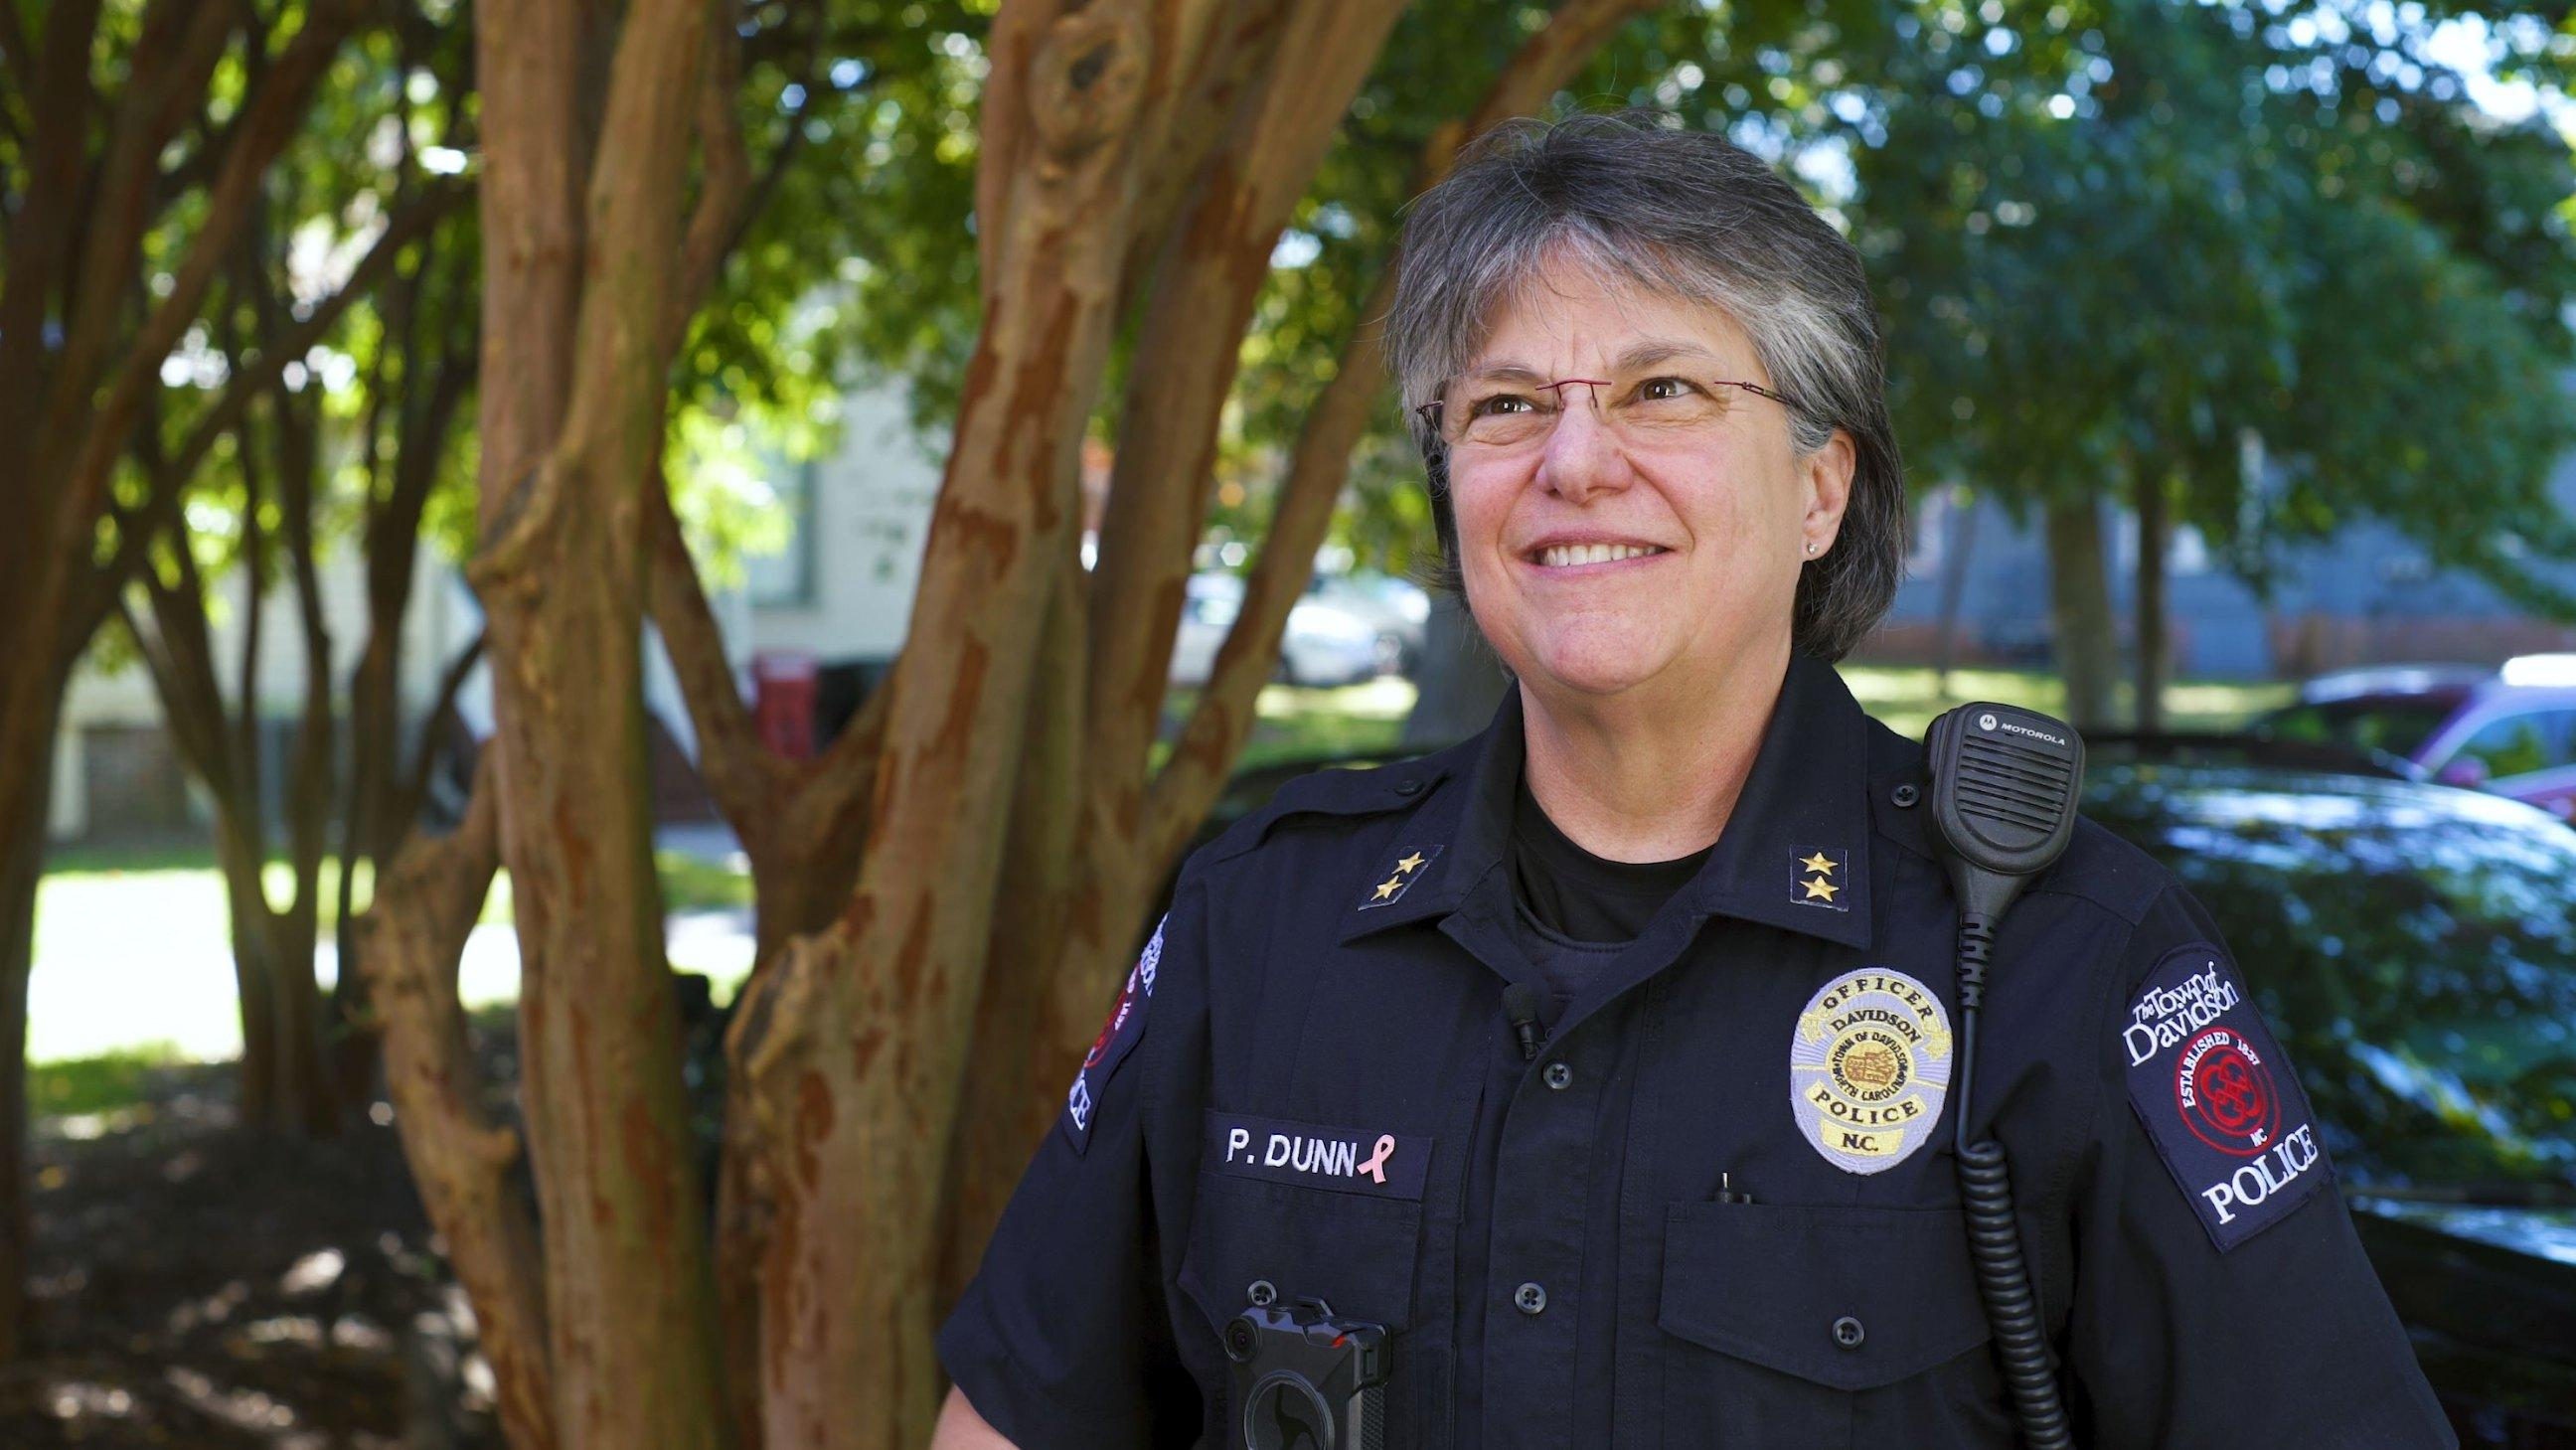 Penny Dunn, Chief of Police